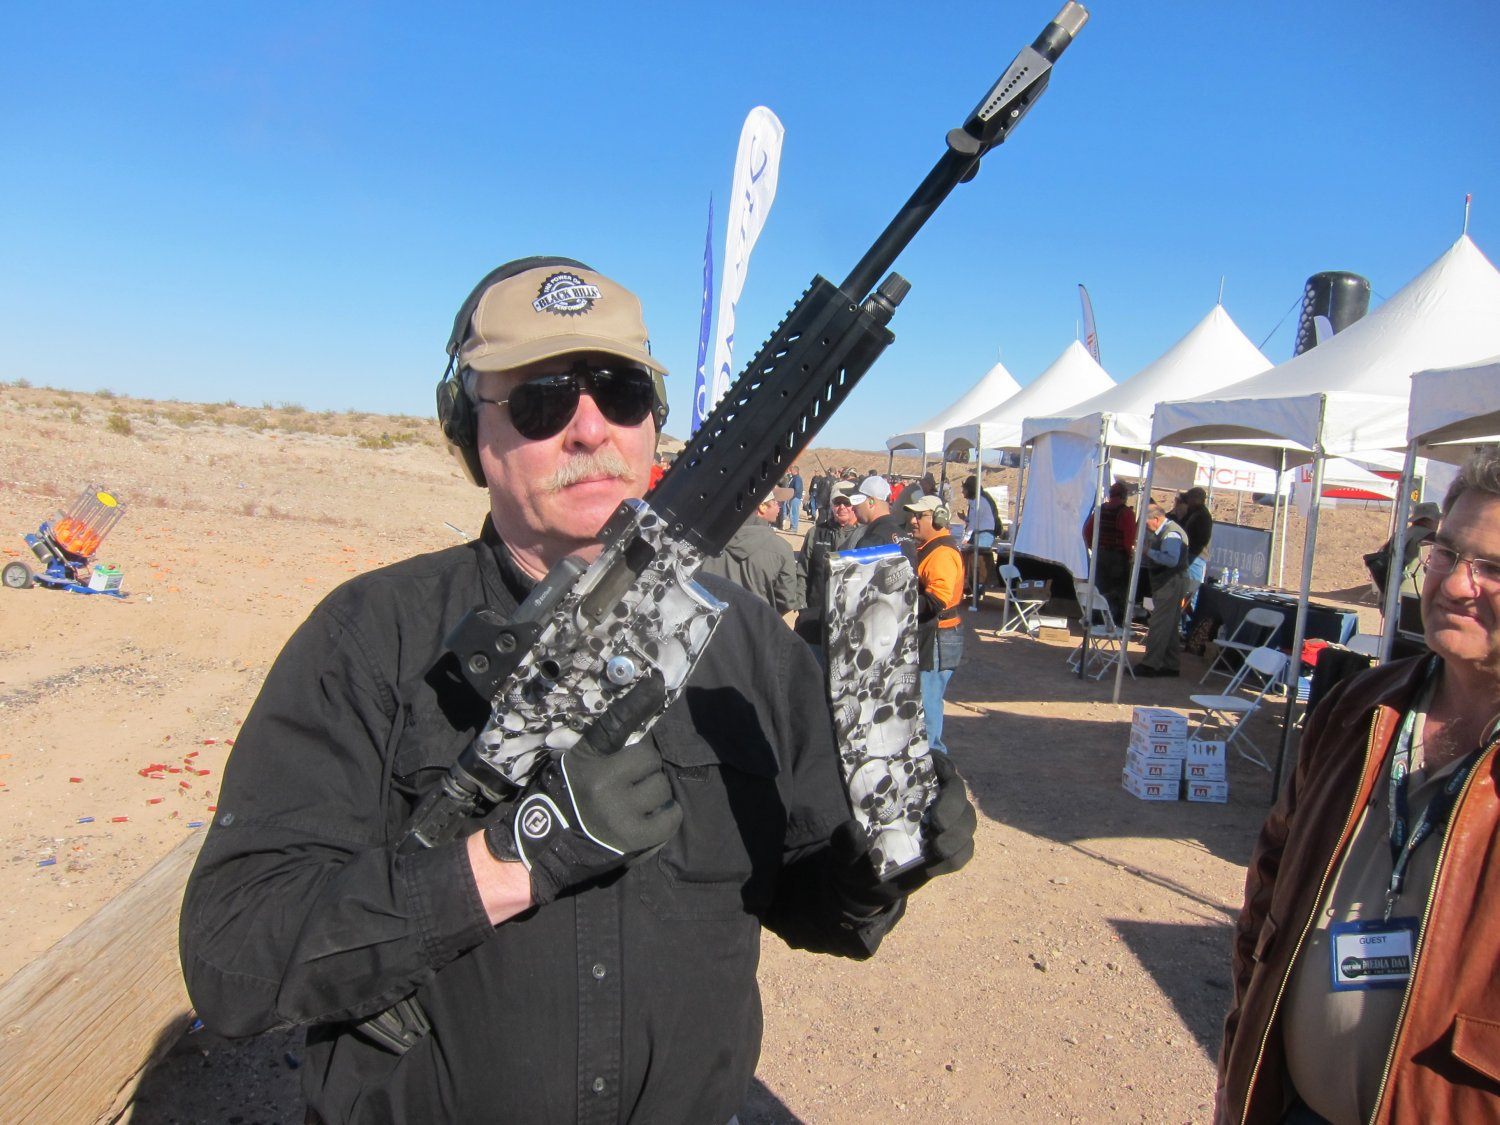 "RAAC Akdal MKA 1919 Shotgun ""Super-Tuned"" by Firebird Precision and Run at the Range at SHOT Show 2012 Media Day: Mag-Fed, Gas-Operated Semi-Auto 12-Gauge Tactical ""AR-15 Shotgun"" with 10-Rounds of 12ga Firepower for Martial Combat or Competition! (Video!)"